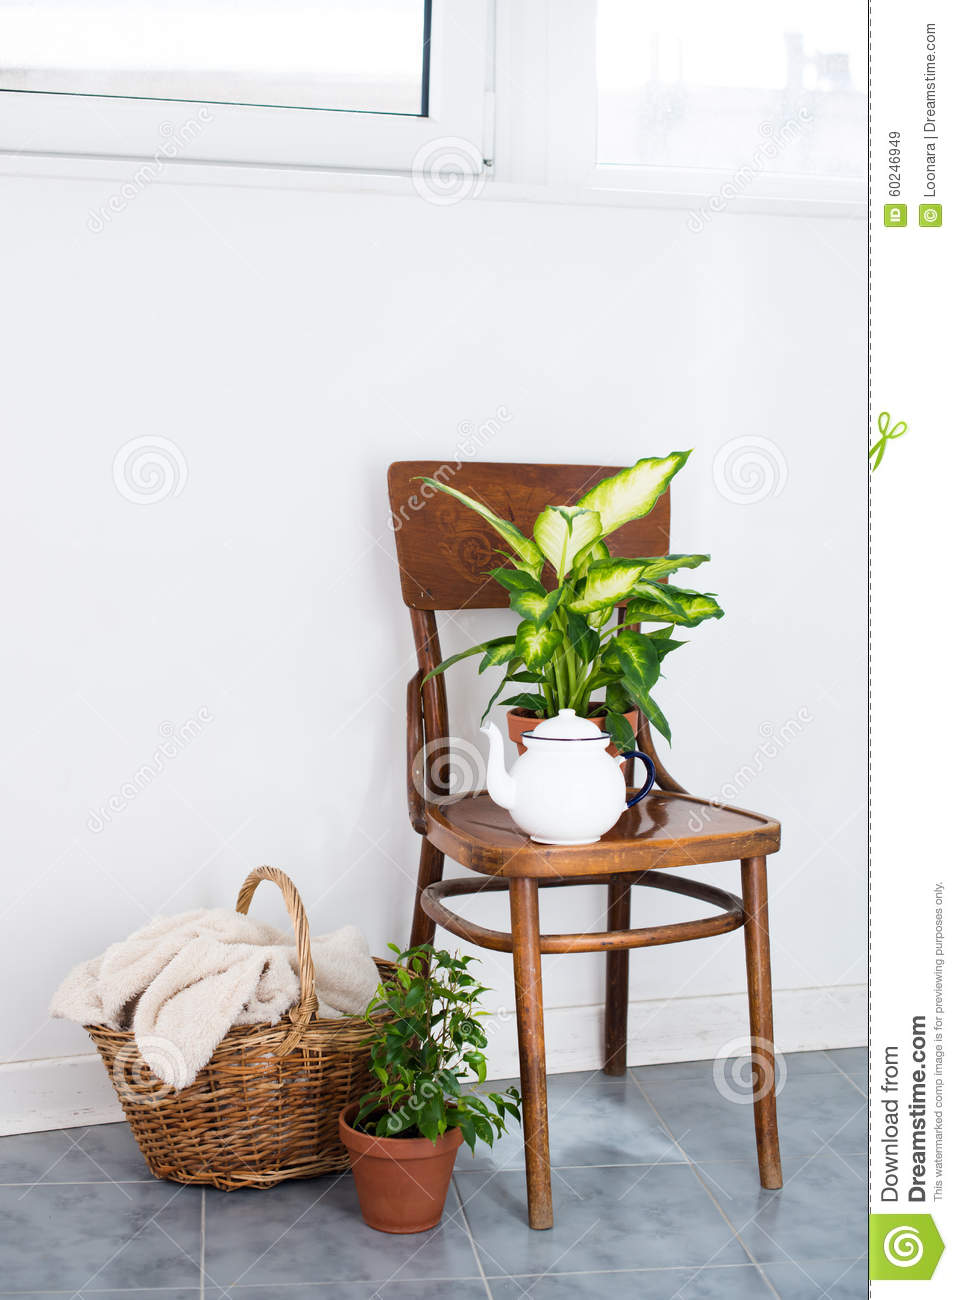 Decor for summer balcony stock photo image 60246949 for Classic house plants